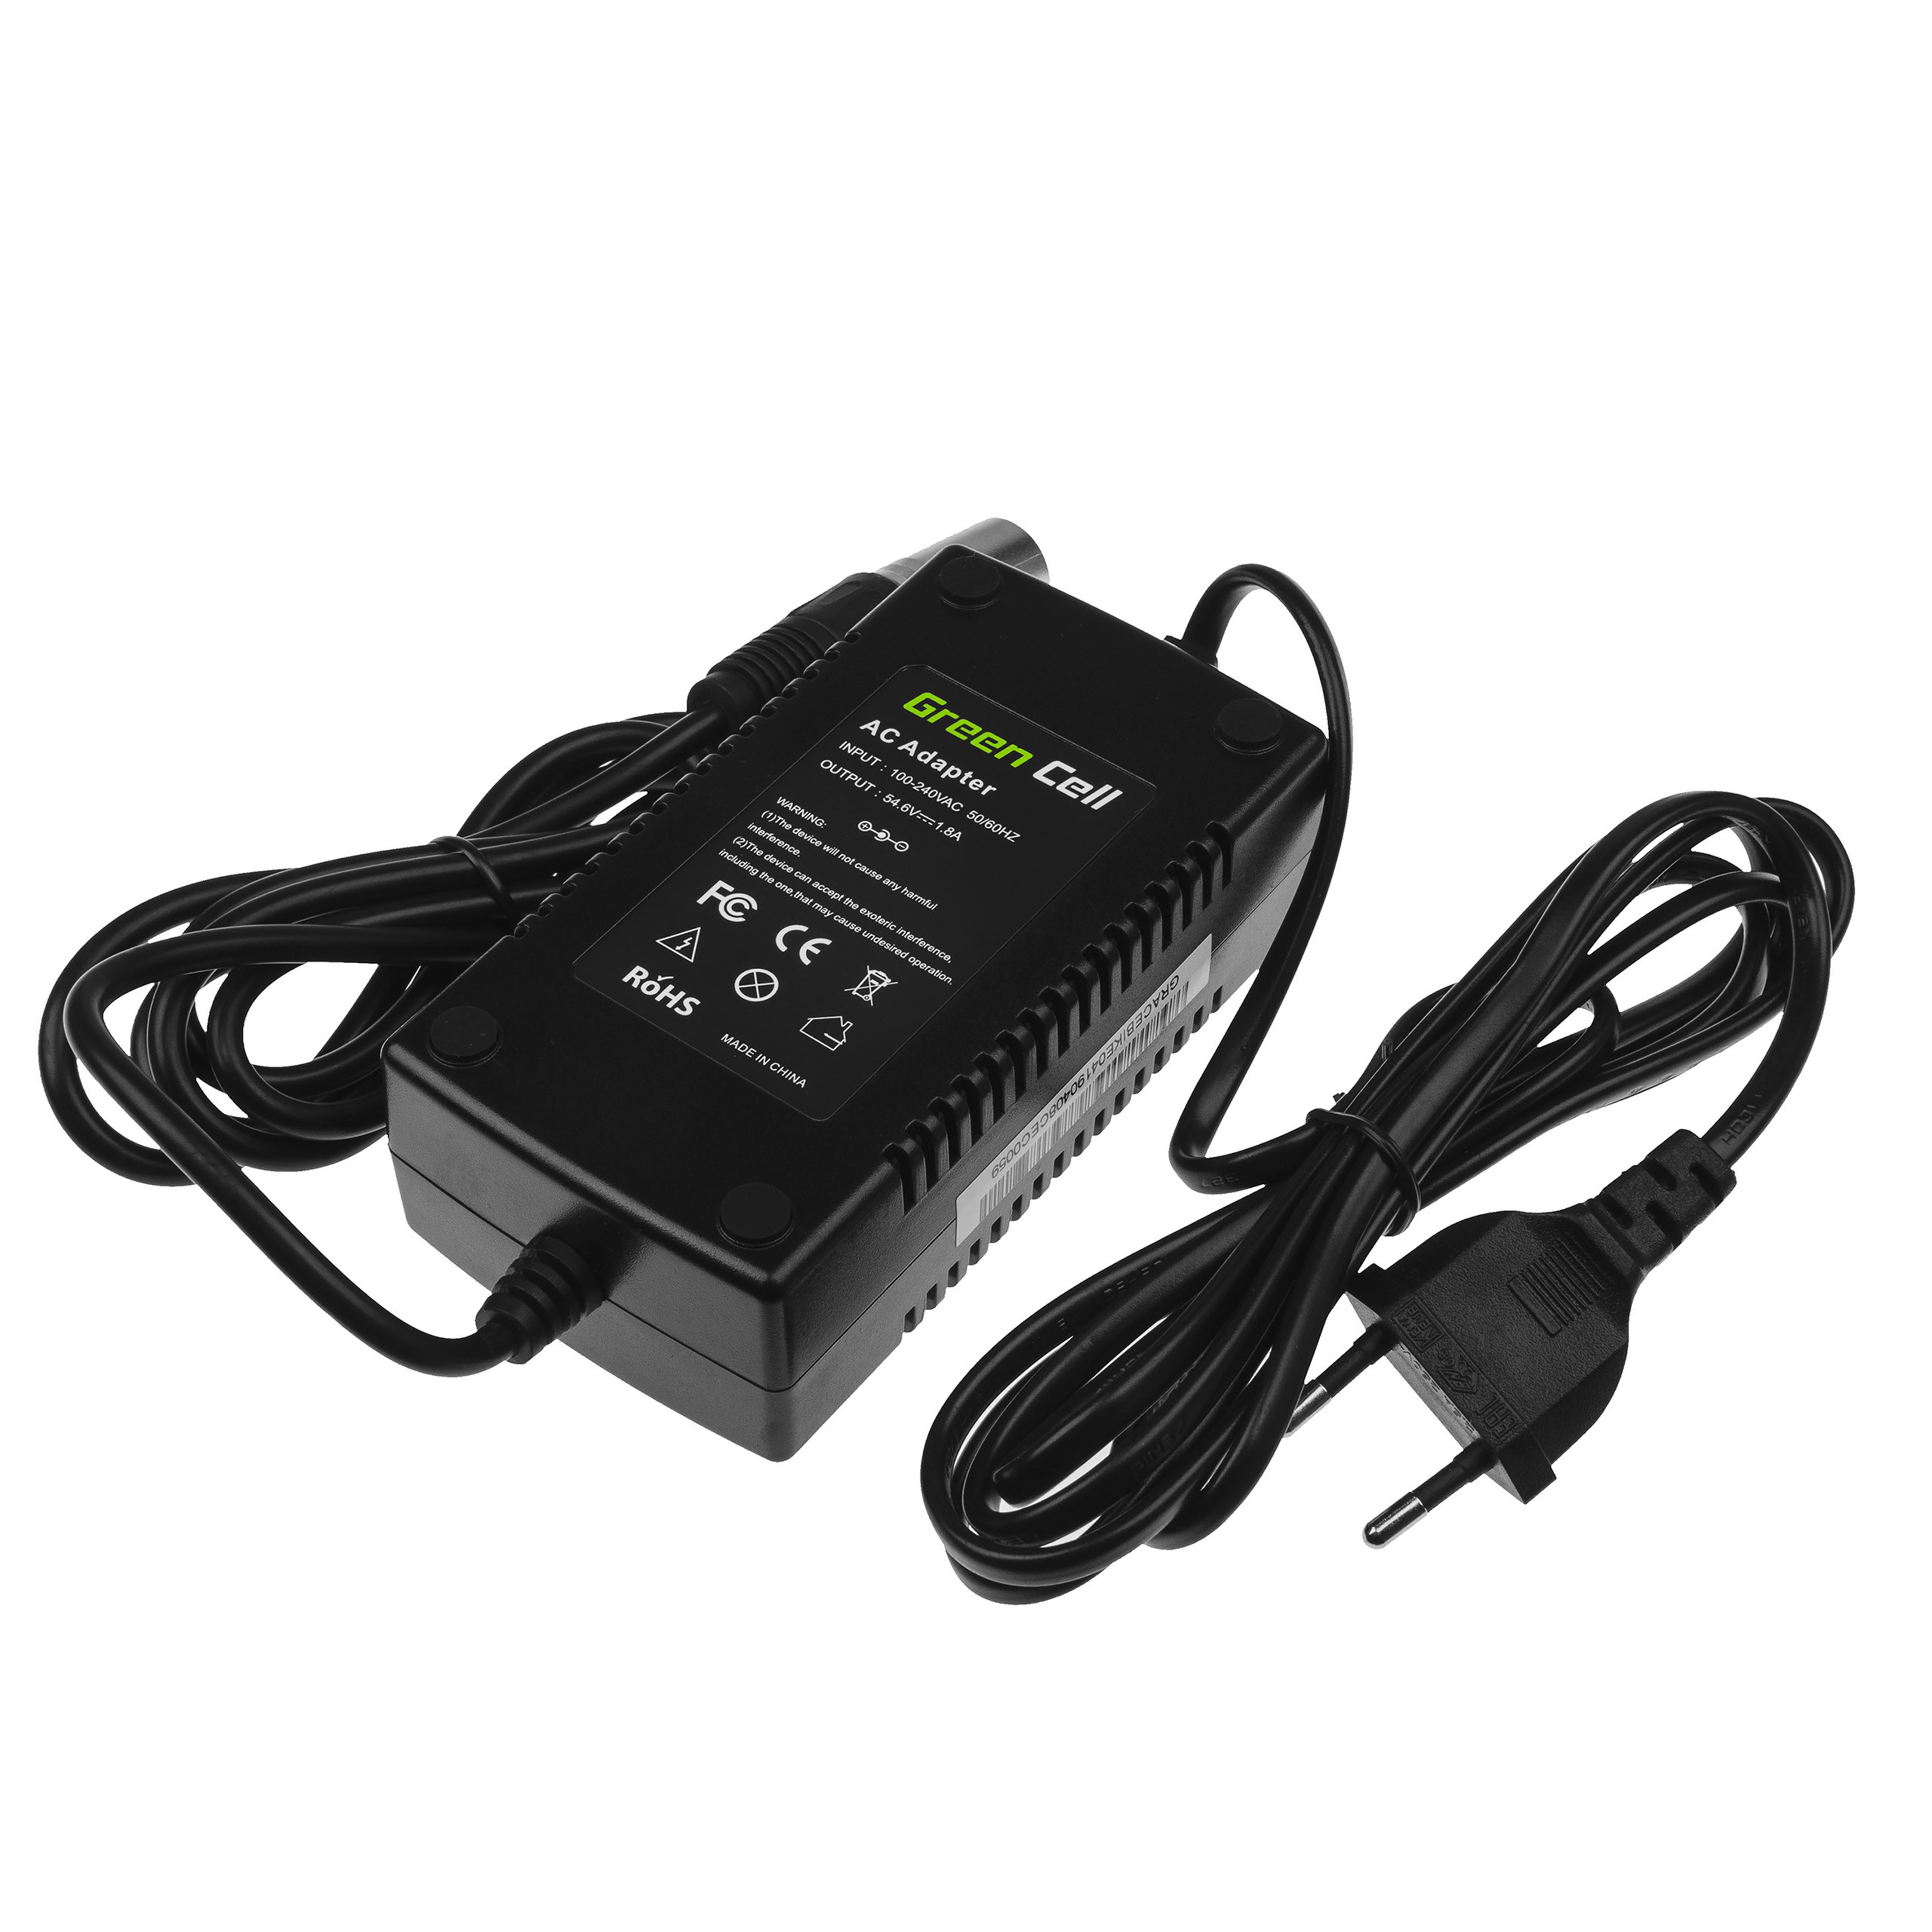 Green Cell Charger 54.6V 1.8A (Cannon) for EBIKE batteries 48V